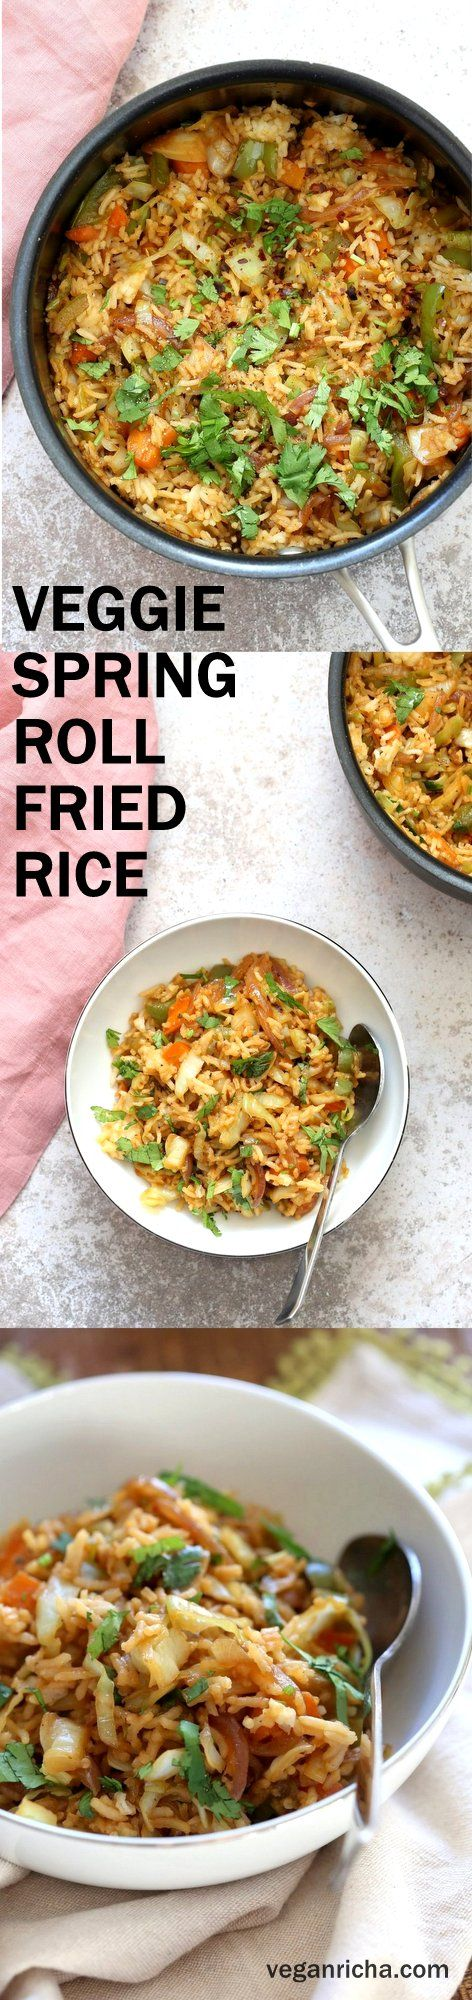 1 Pot, 30 Minute Veggie Spring Rolls Fried Rice! Fridge clean up fried rice with cabbage, carrots, bell pepper,  with rice or other cooked grains for a quick weeknight meal. #Vegan #veganricha #Glutenfree #Nutfree #Recipe | VeganRicha.com